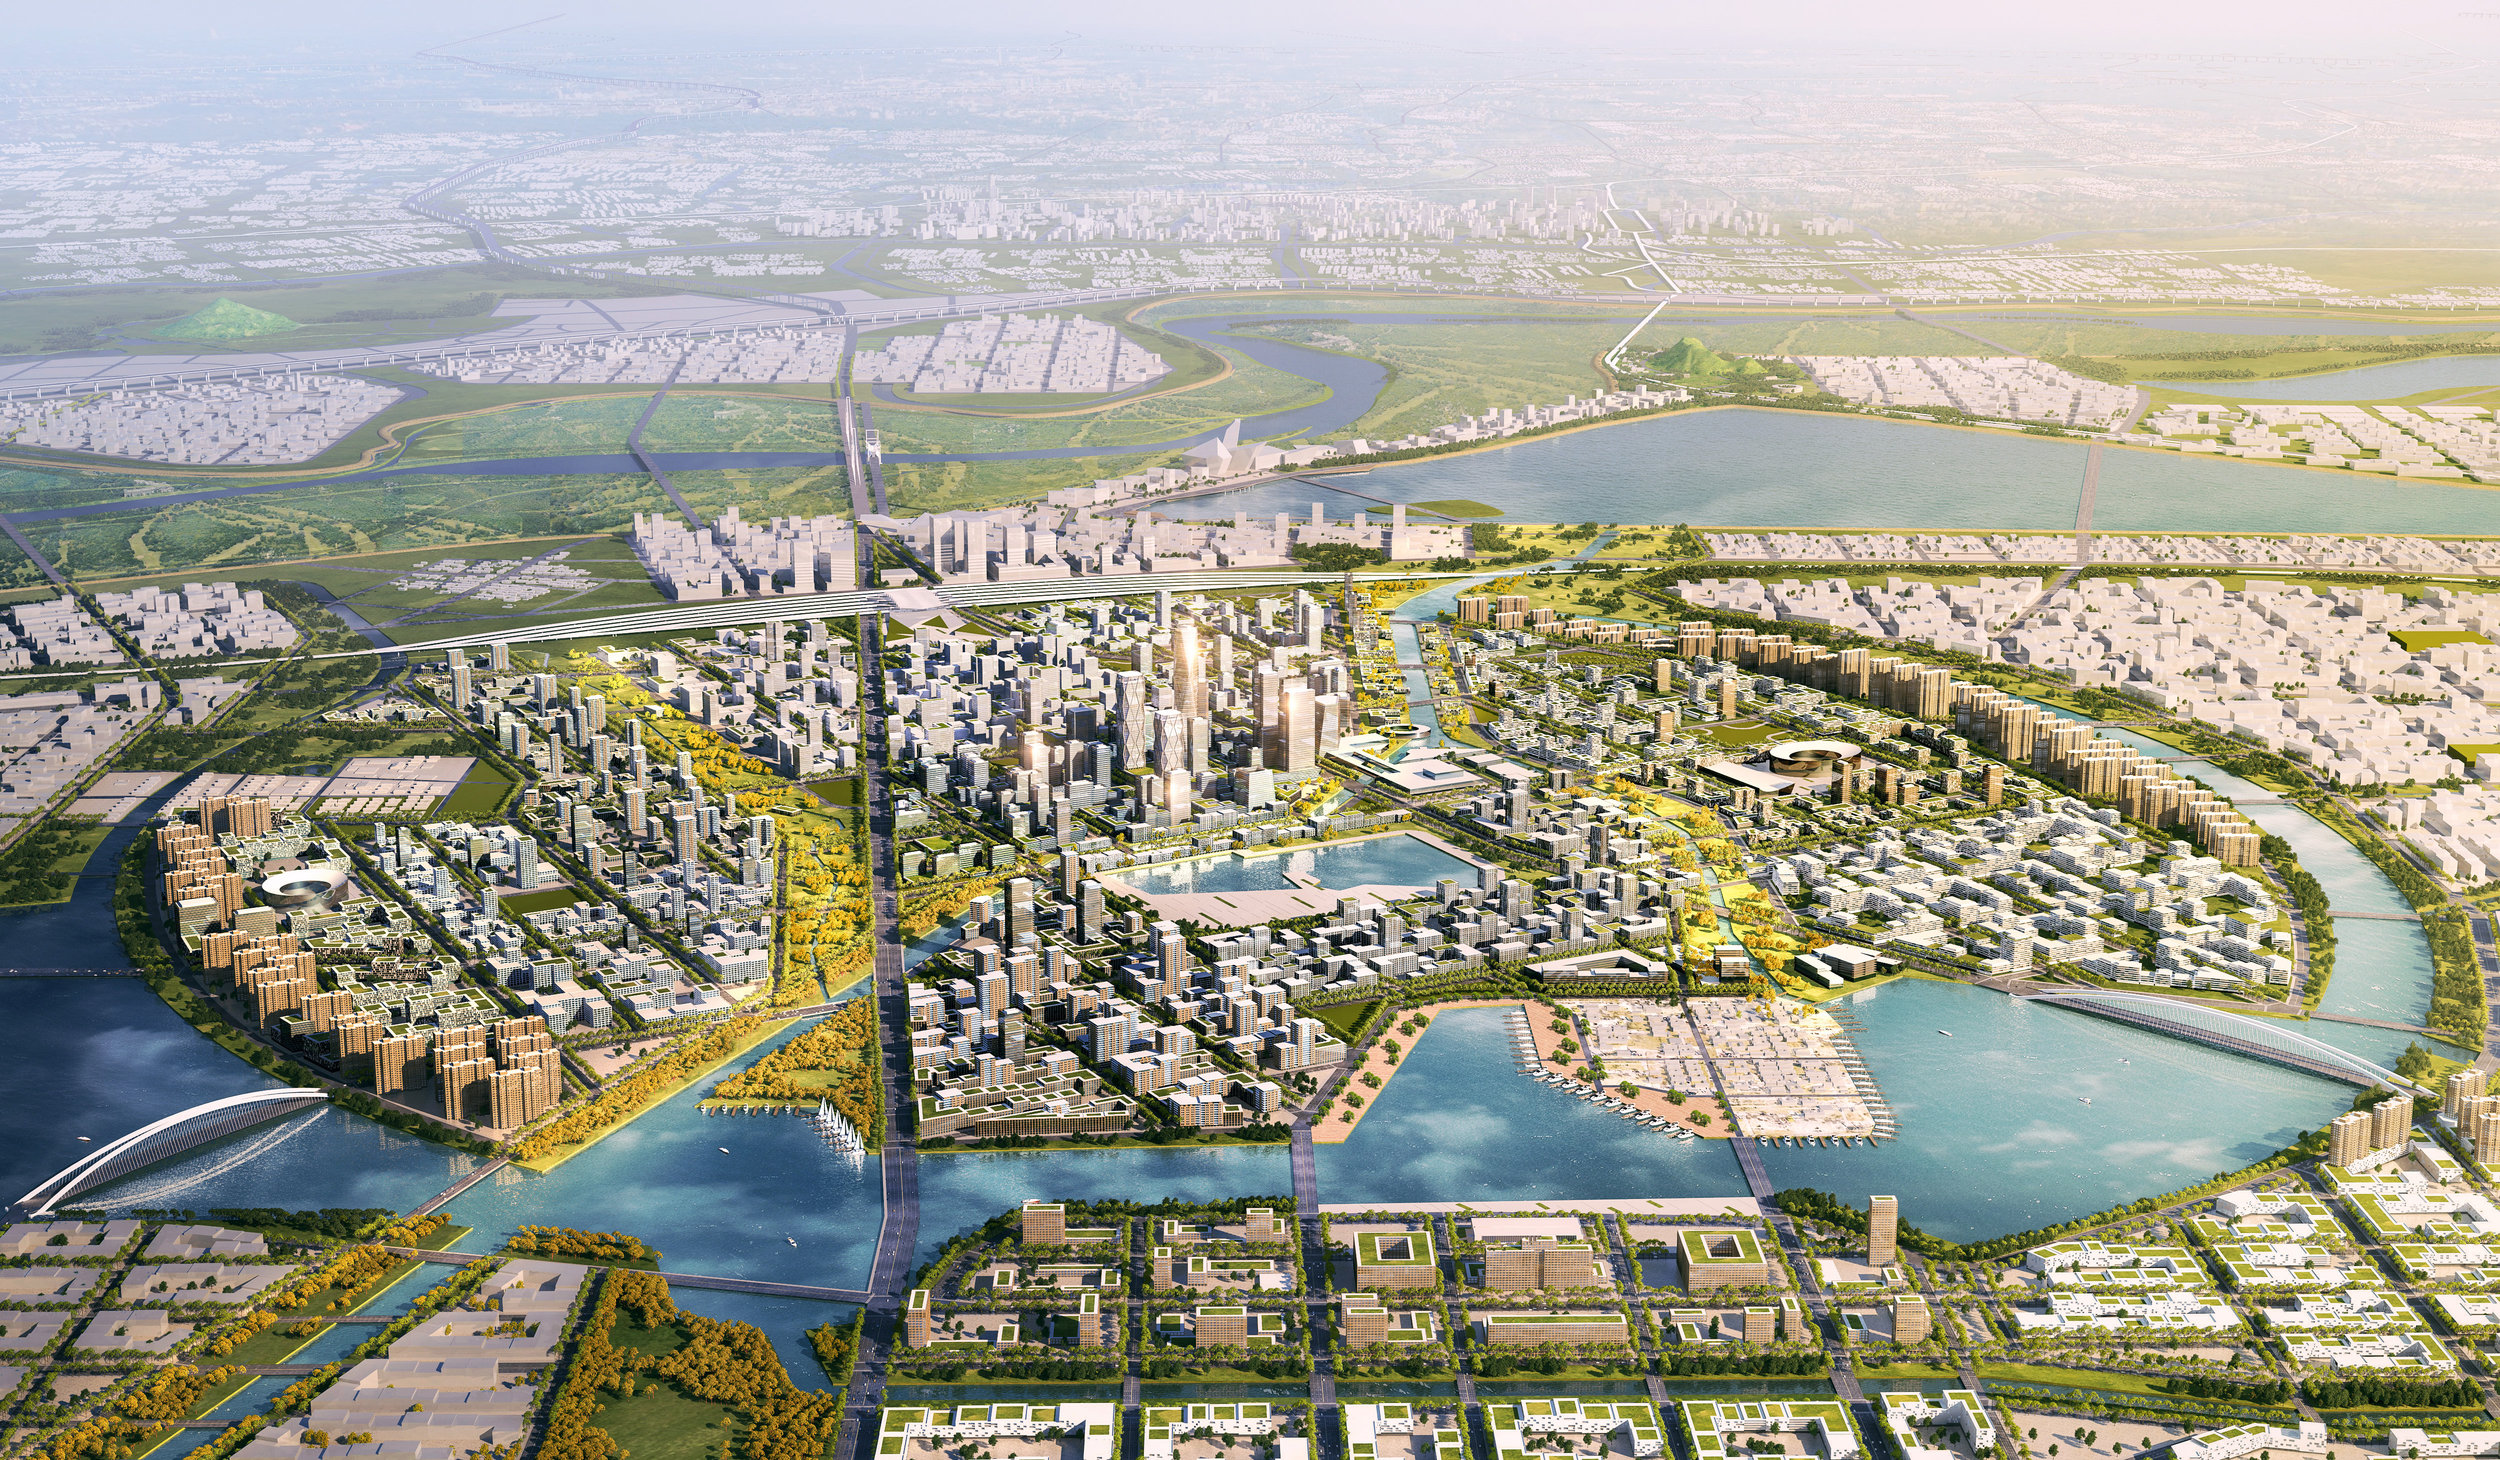 DF_Jinan River North Development_Aerial.jpg